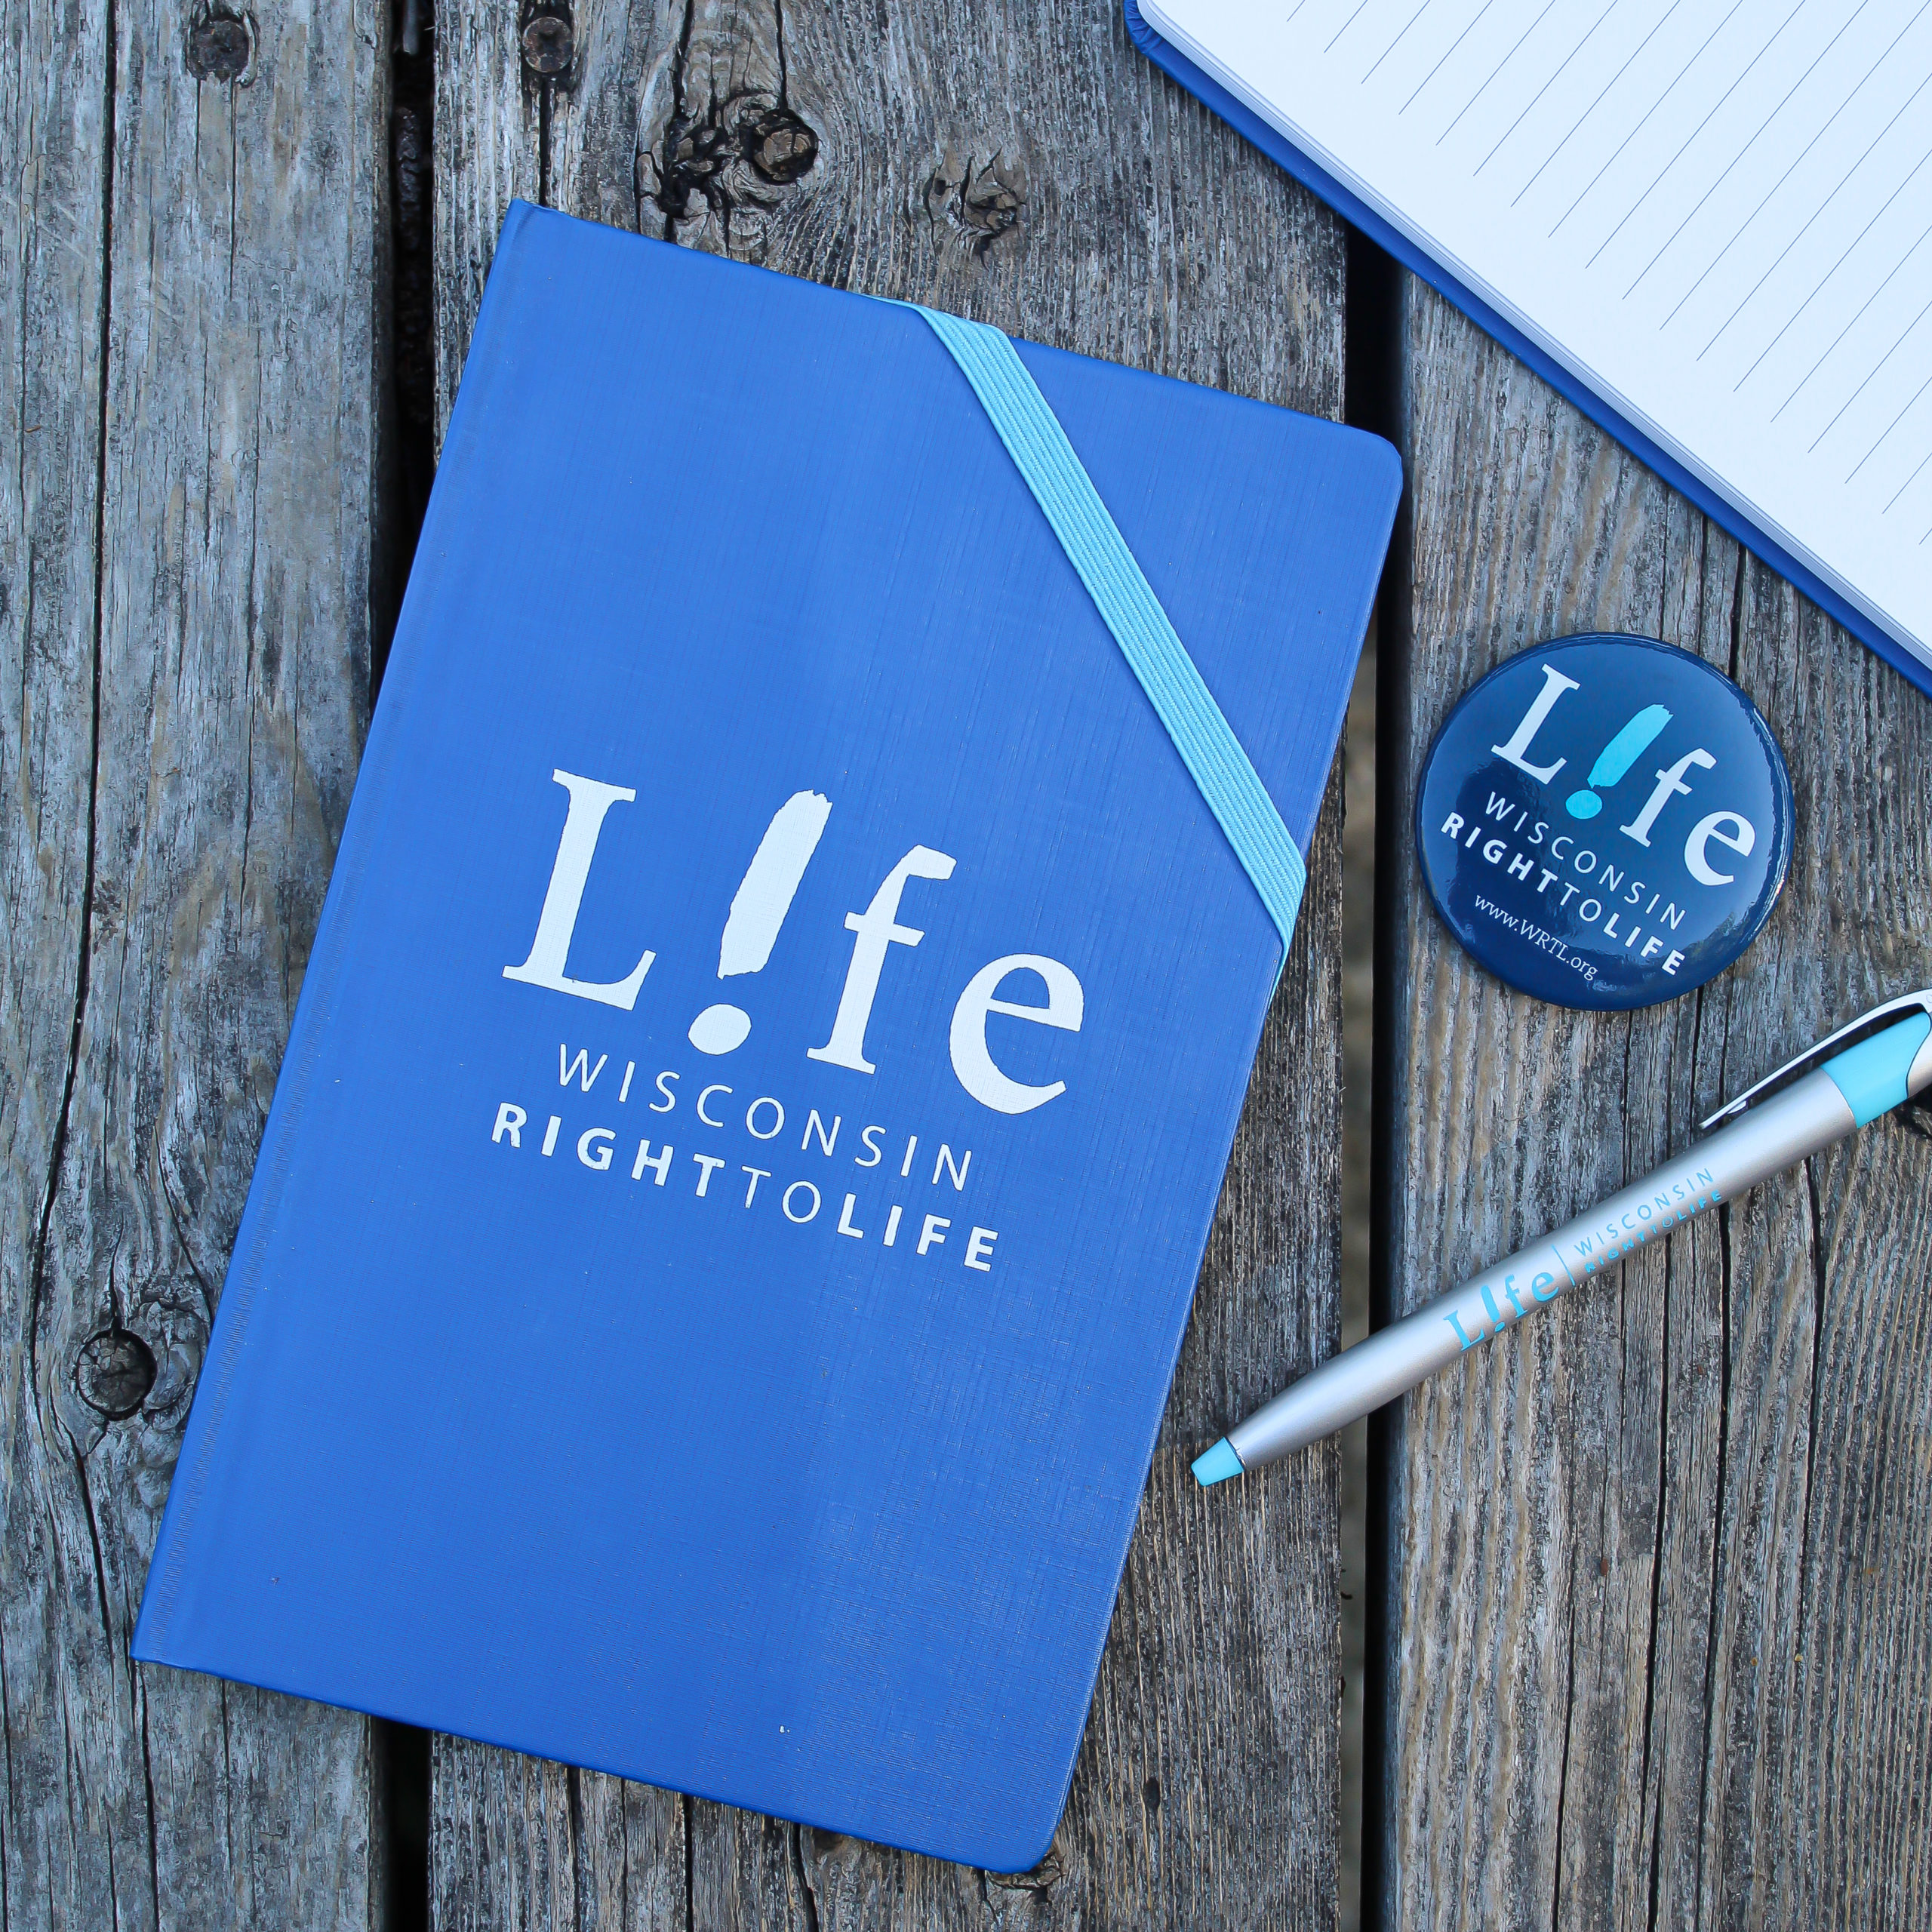 Life Journal – Wisconsin Right to Life